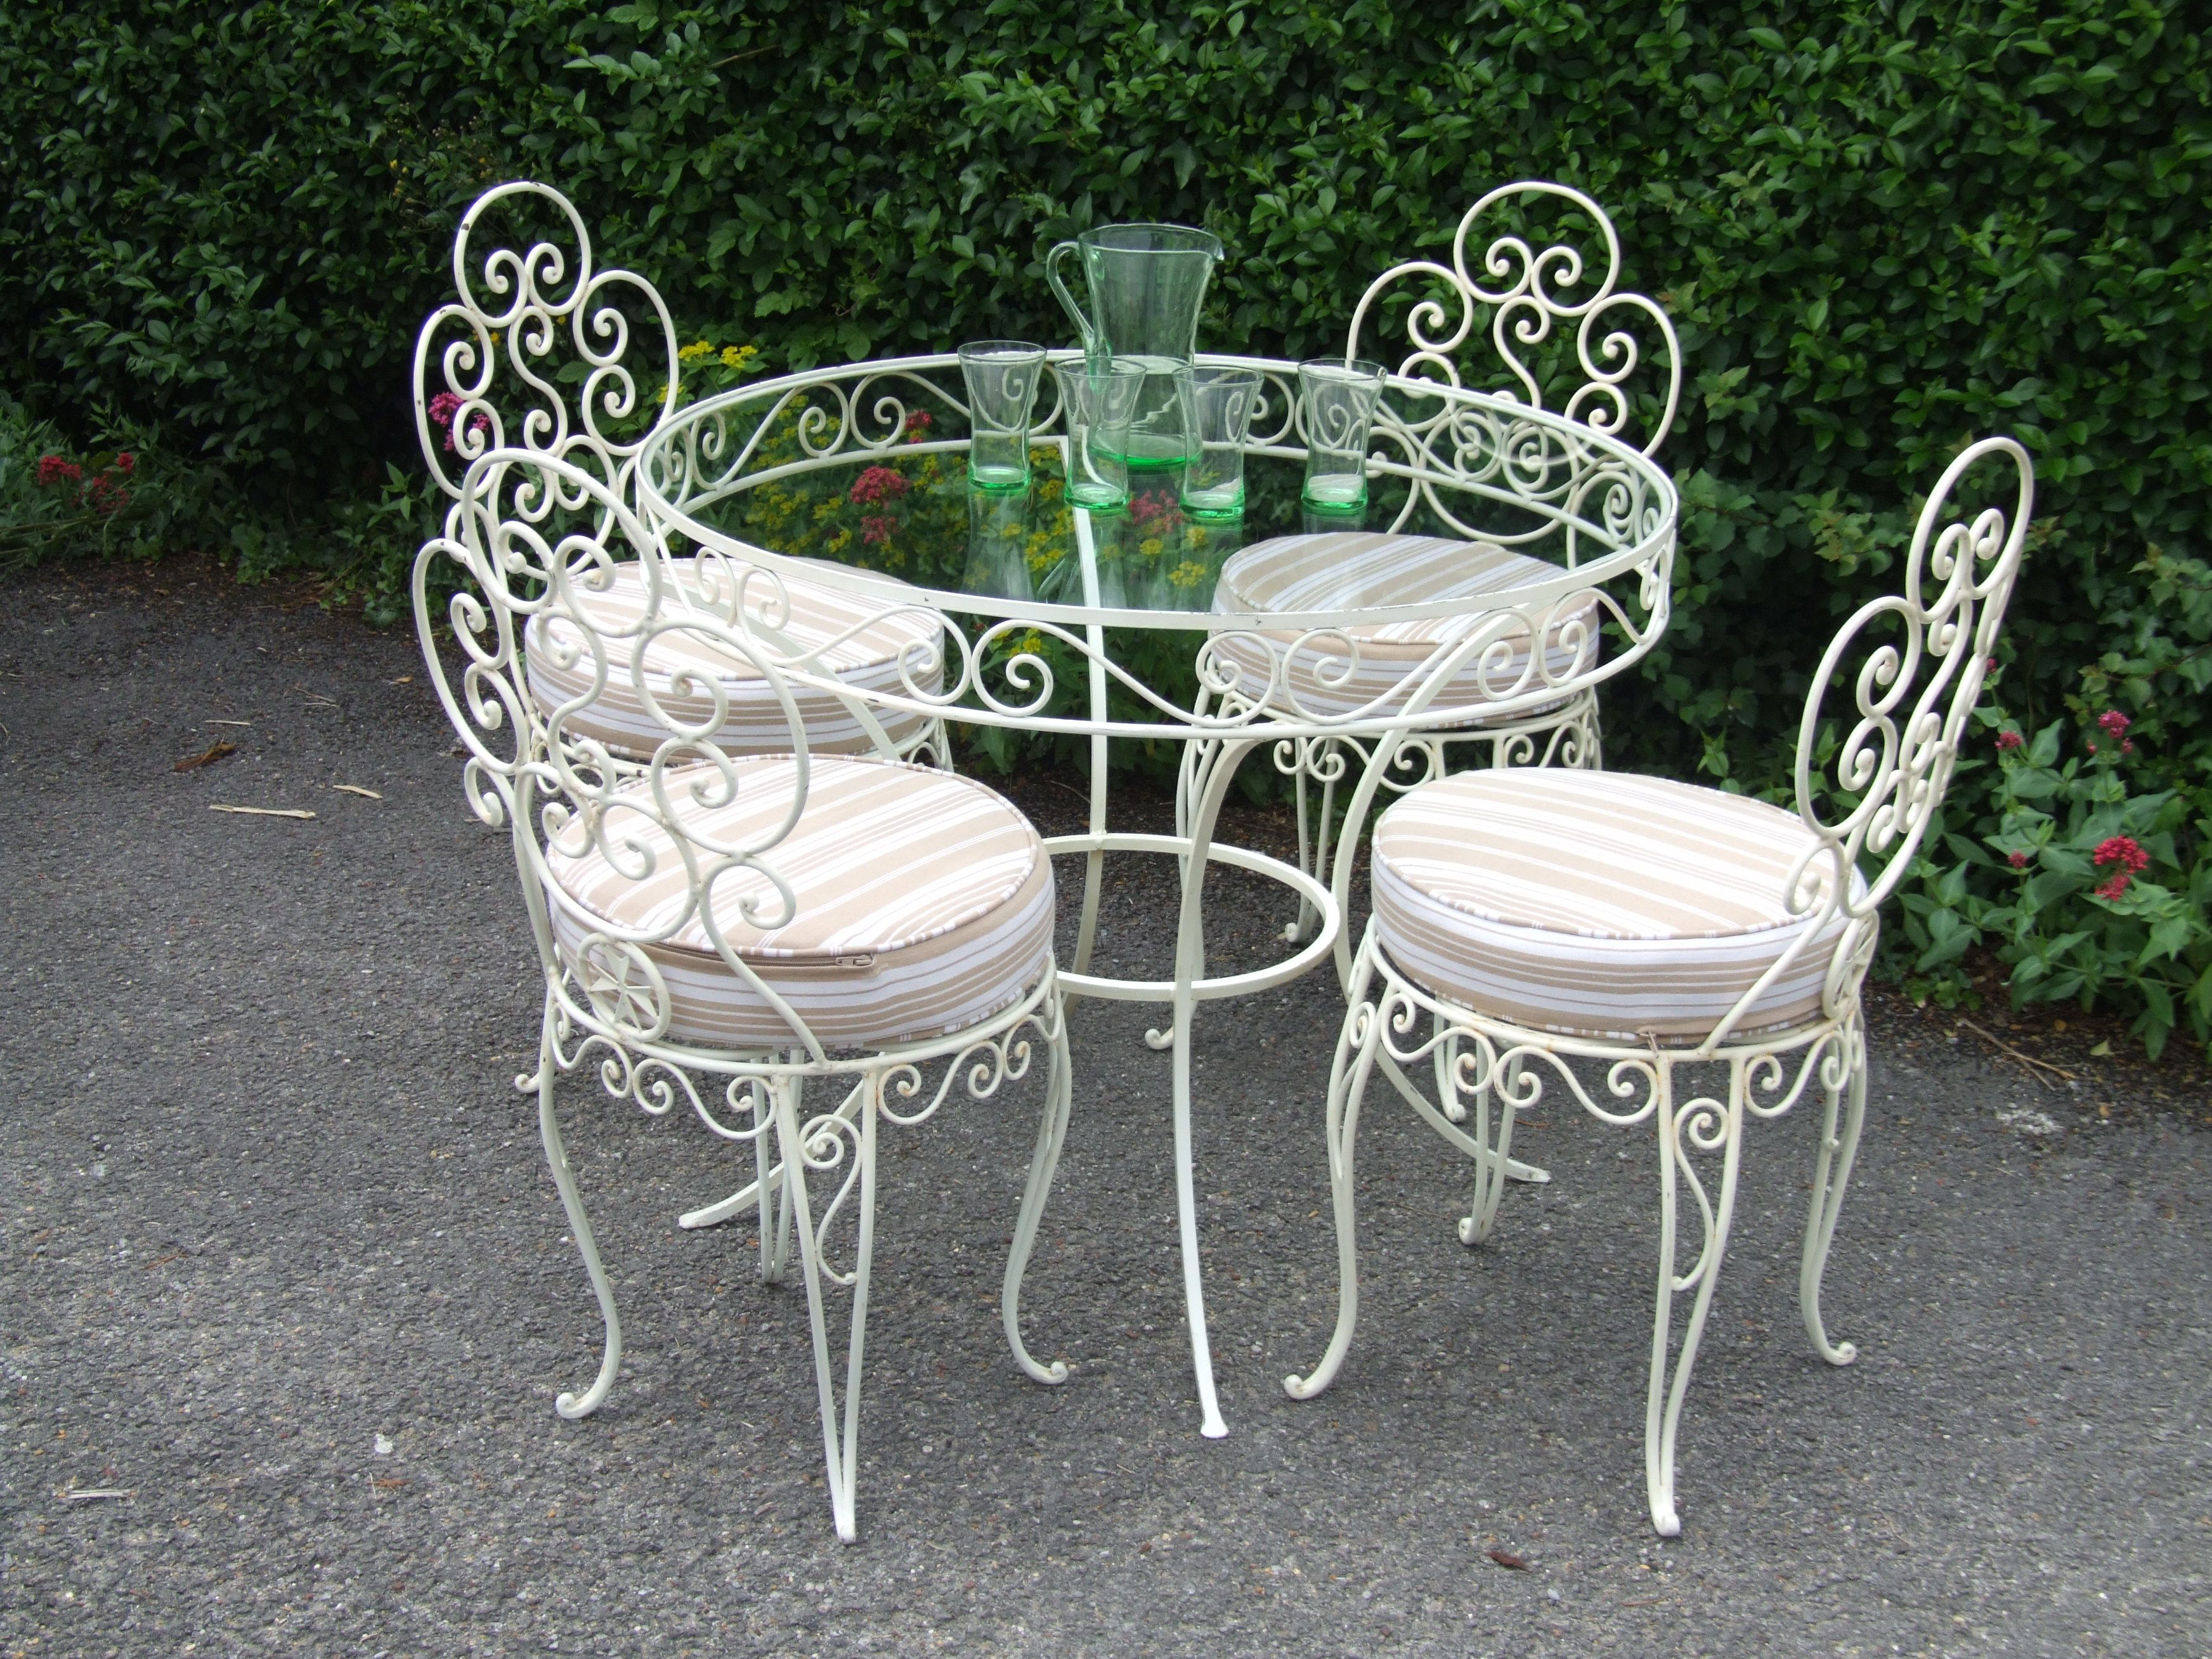 G175 Vintage French Wrought Iron Conservatory Patio Cafe